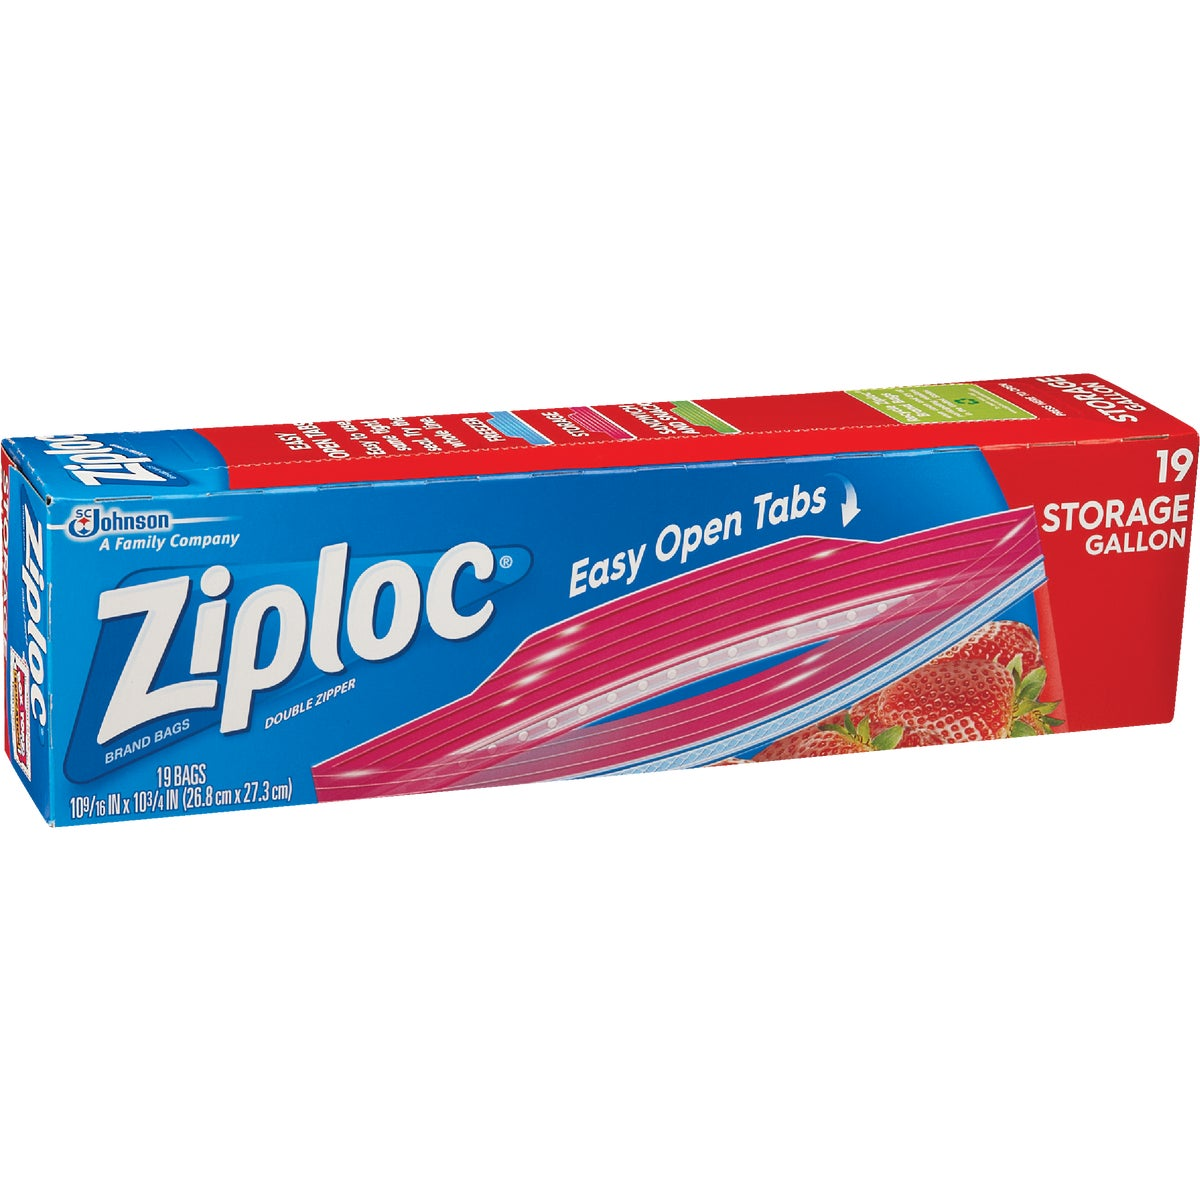 GAL ZIPLOC STORAGE BAG - 00350 by Sc Johnson